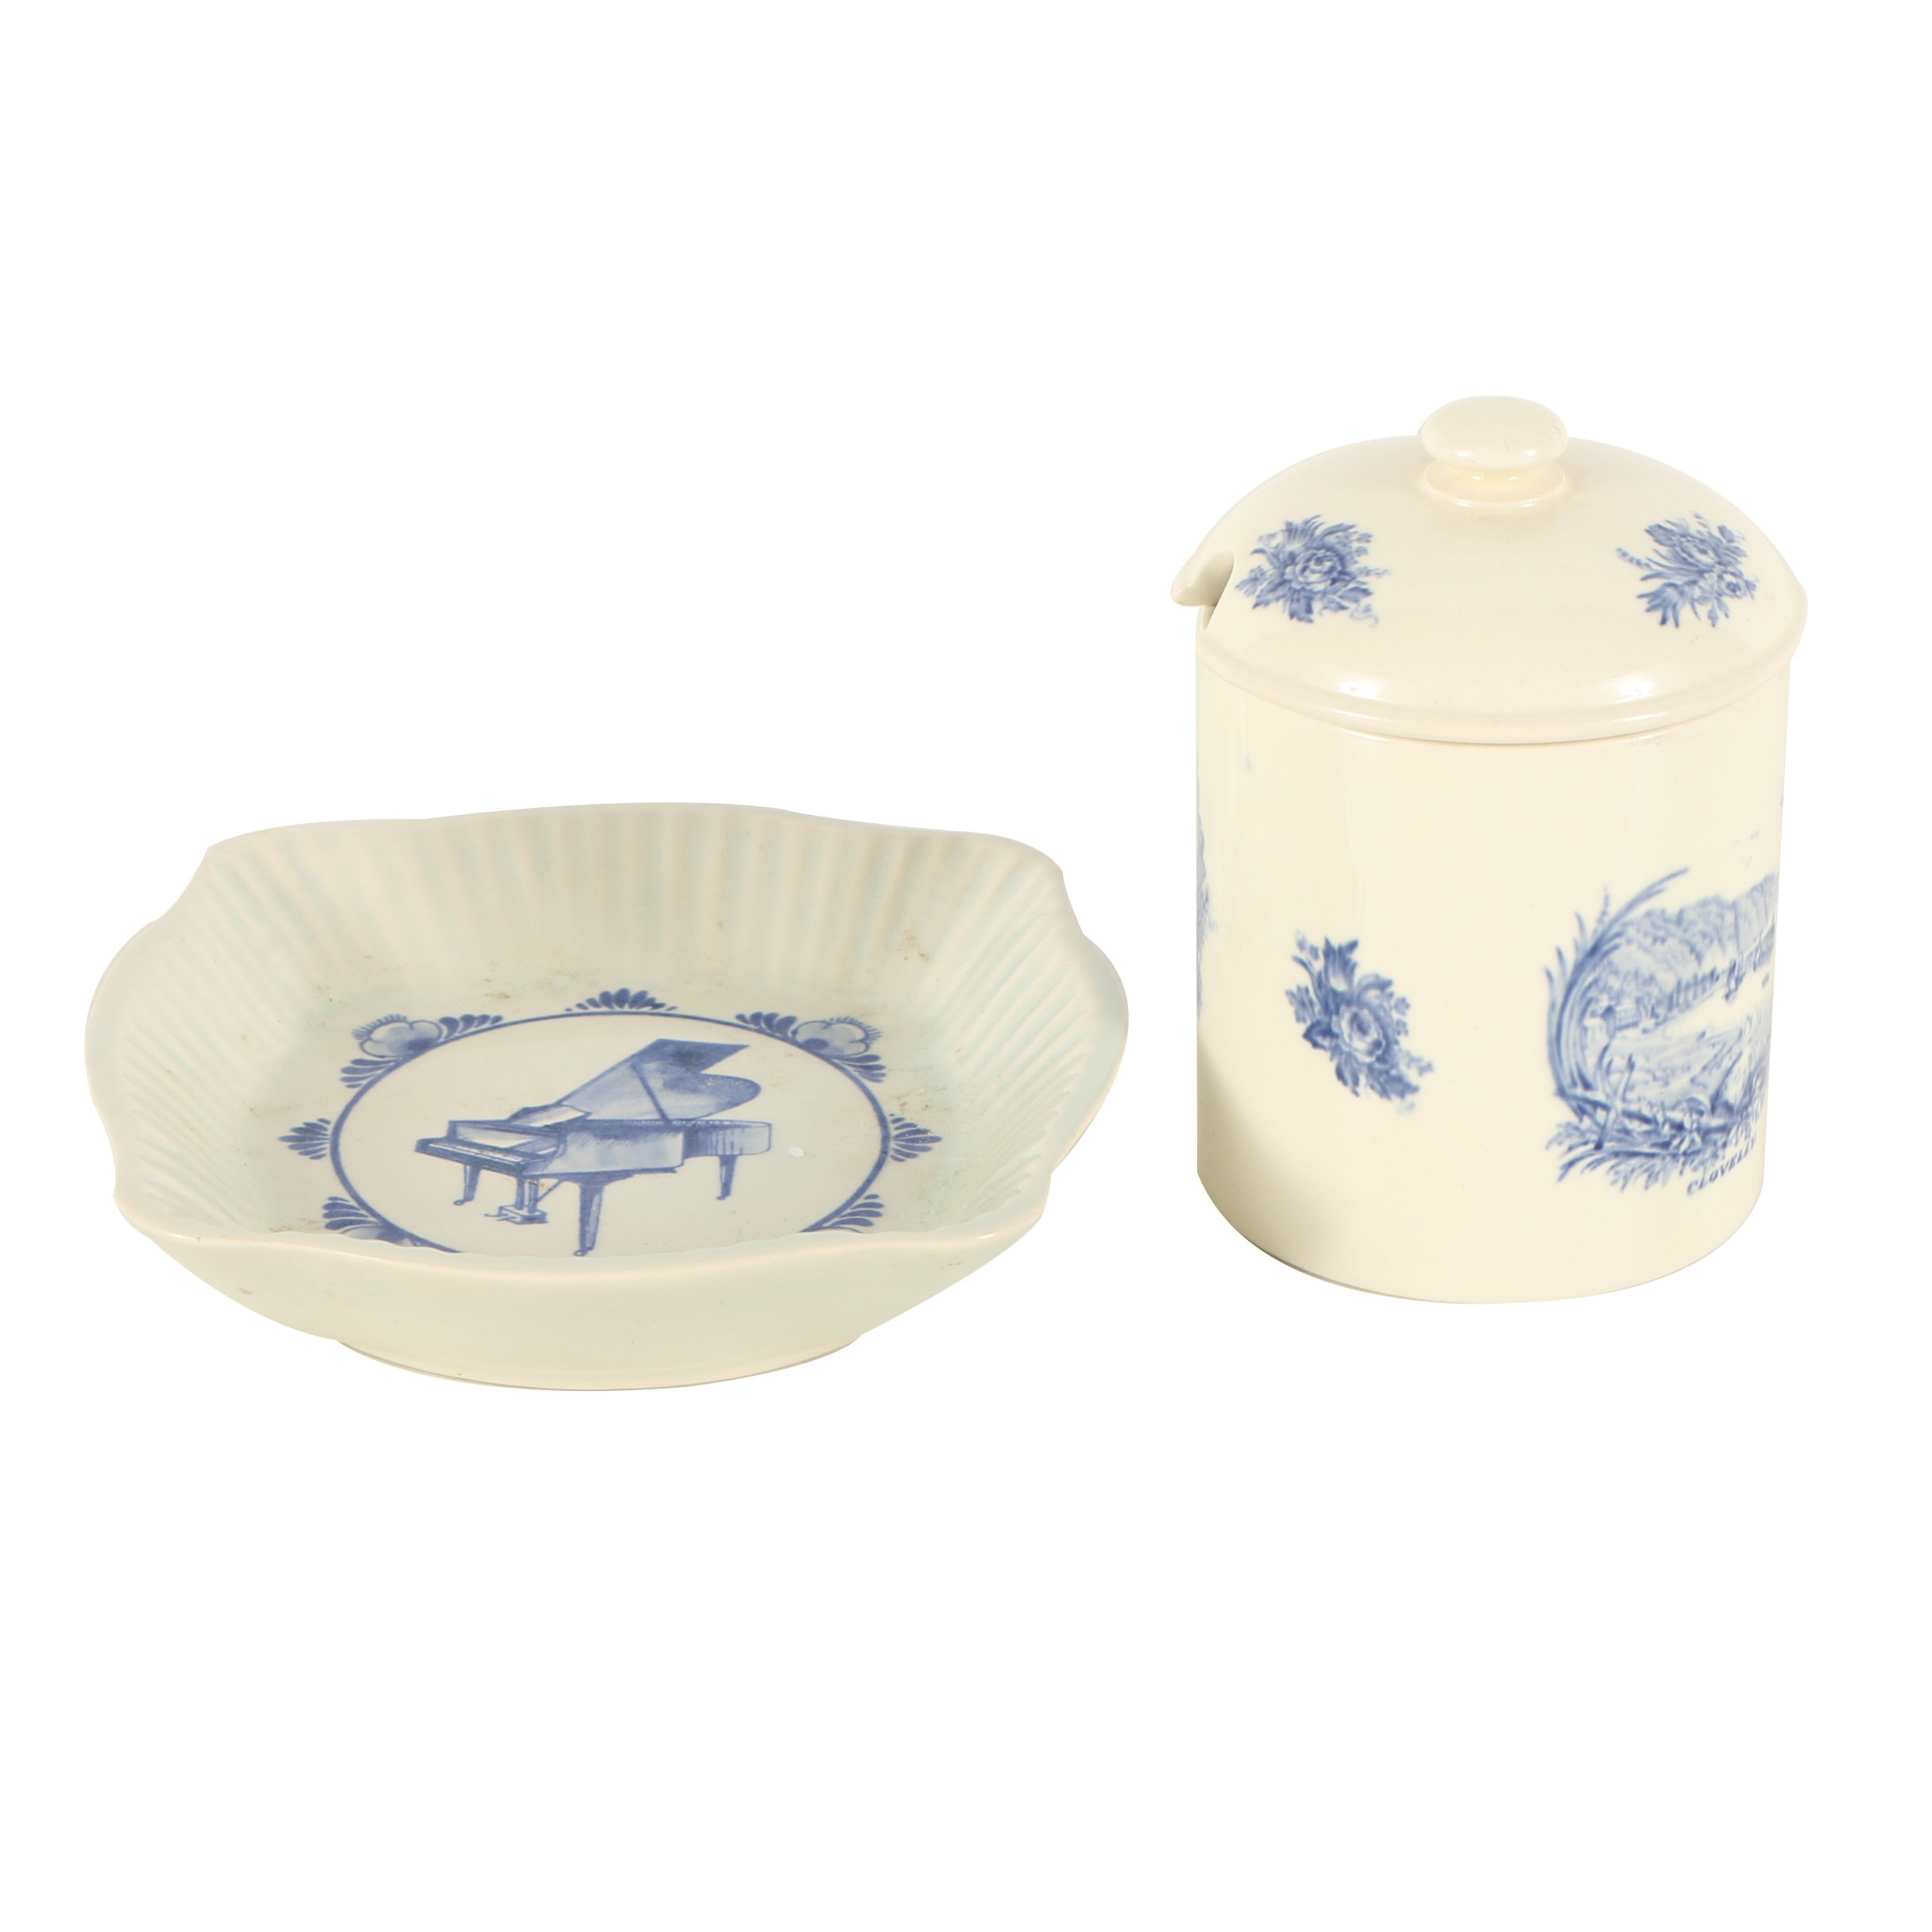 Rex Whistler Wedgwood Jam Pot and Small Delft Dish